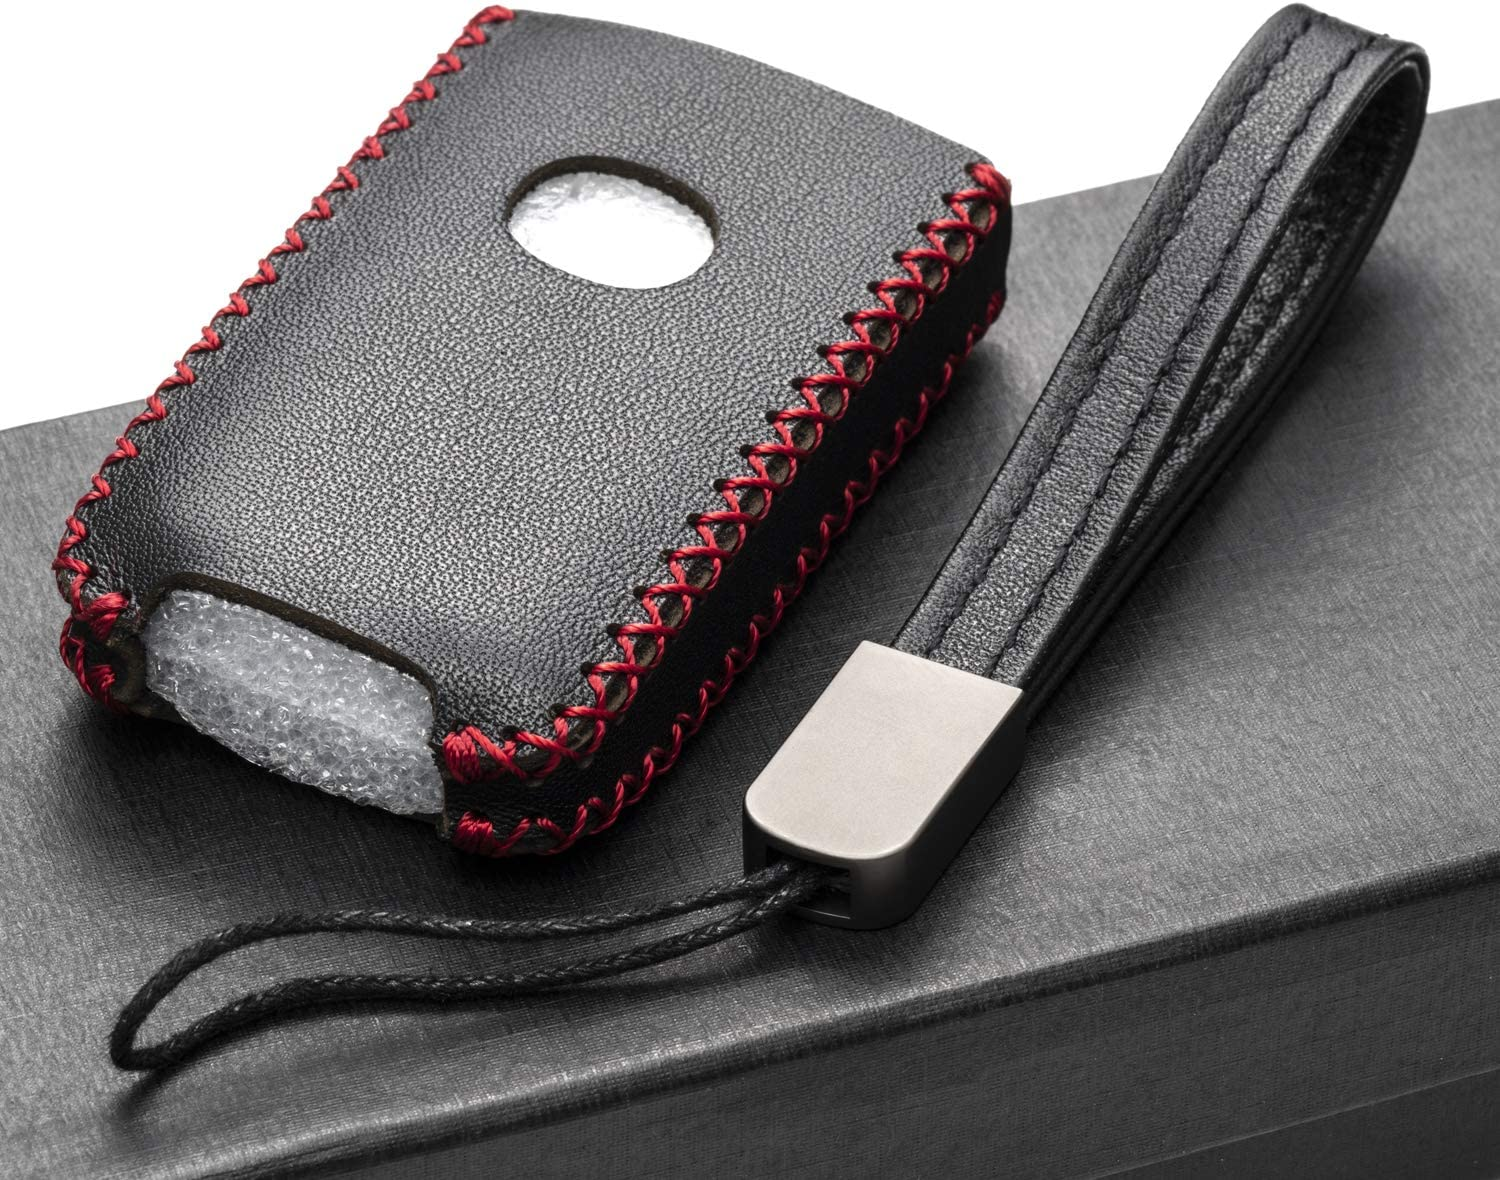 CX-30 4-Button, Red Vitodeco Genuine Leather Smart Key Fob Case Cover Protector with Leather Key Holder for 2019-2020 Mazda 3 2020 Mazda CX-5 Mazda 3 Hatchback